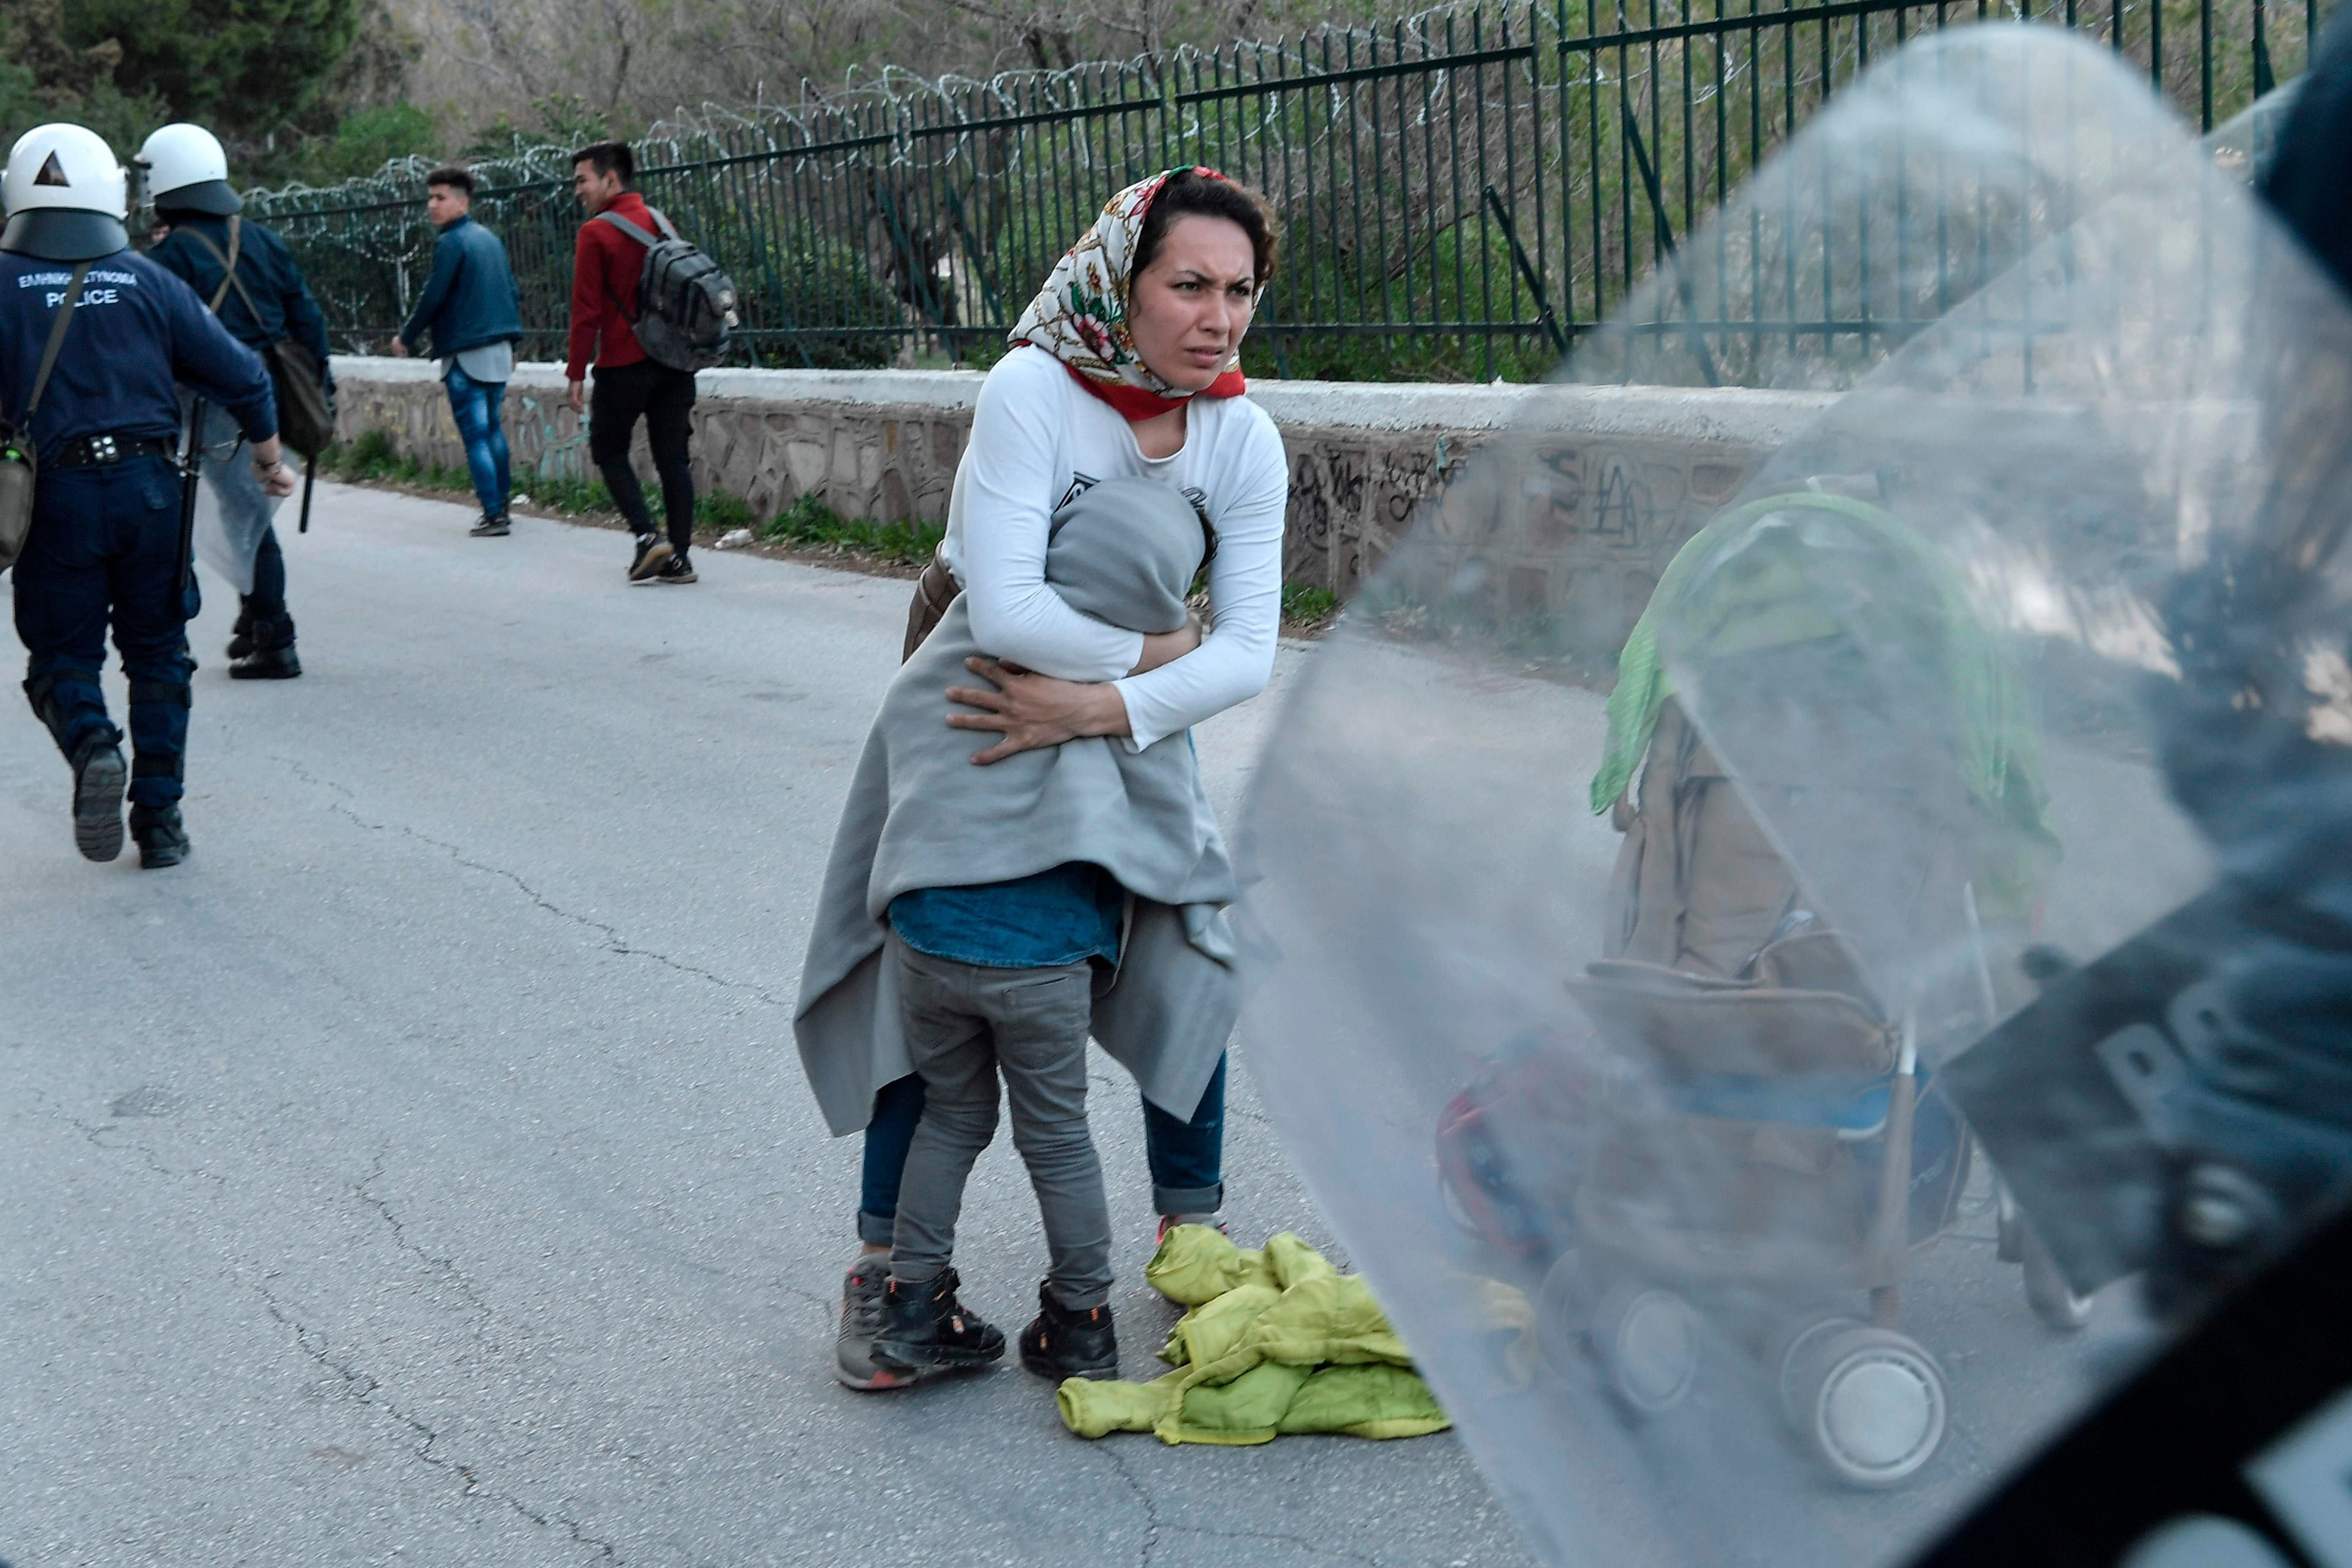 TOPSHOT - A woman protects her child, while police dispearses migrants who have gathered outside the port of Mytilene, on the island of Lesbos hoping to get on a ferry to Athens on March 3, 2020. - Several aid groups on Greece's Lesbos said they were suspending work with refugees and evacuating staff on March 3 in the wake of violence and threats, as tensions soar on an island in the crosshairs of the migrant crisis. EU chiefs pledged millions of euros of financial assistance to Greece to help tackle the migration surge. (Photo by LOUISA GOULIAMAKI / AFP)